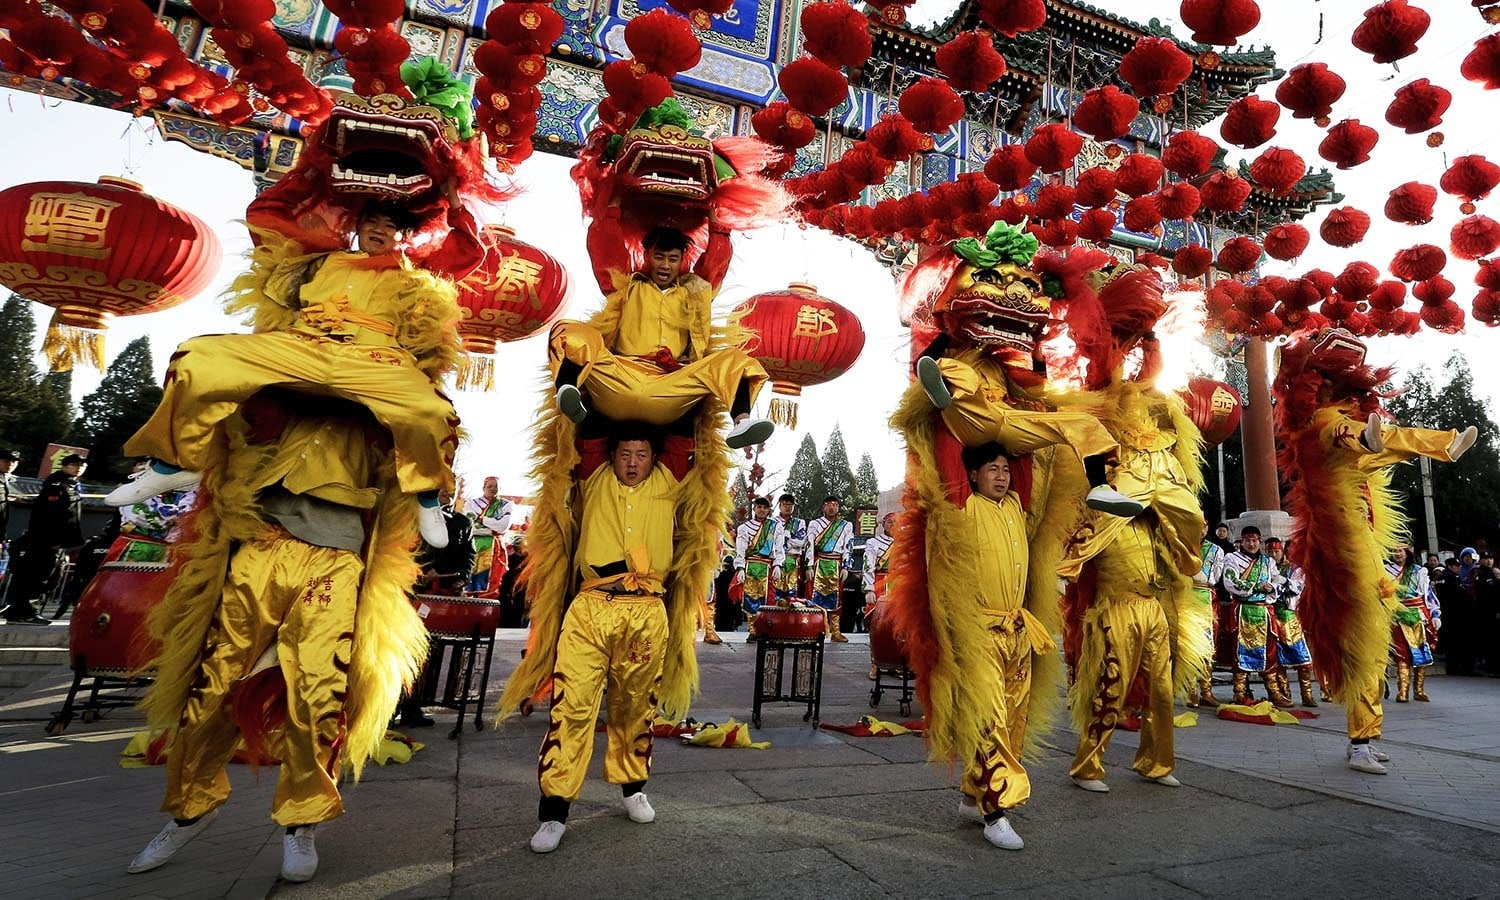 Uncategorized Chinese New Year Dance chinese new year celebrations world dawn com performers participate in a lion dance at ditan park to mark the first day of chinese